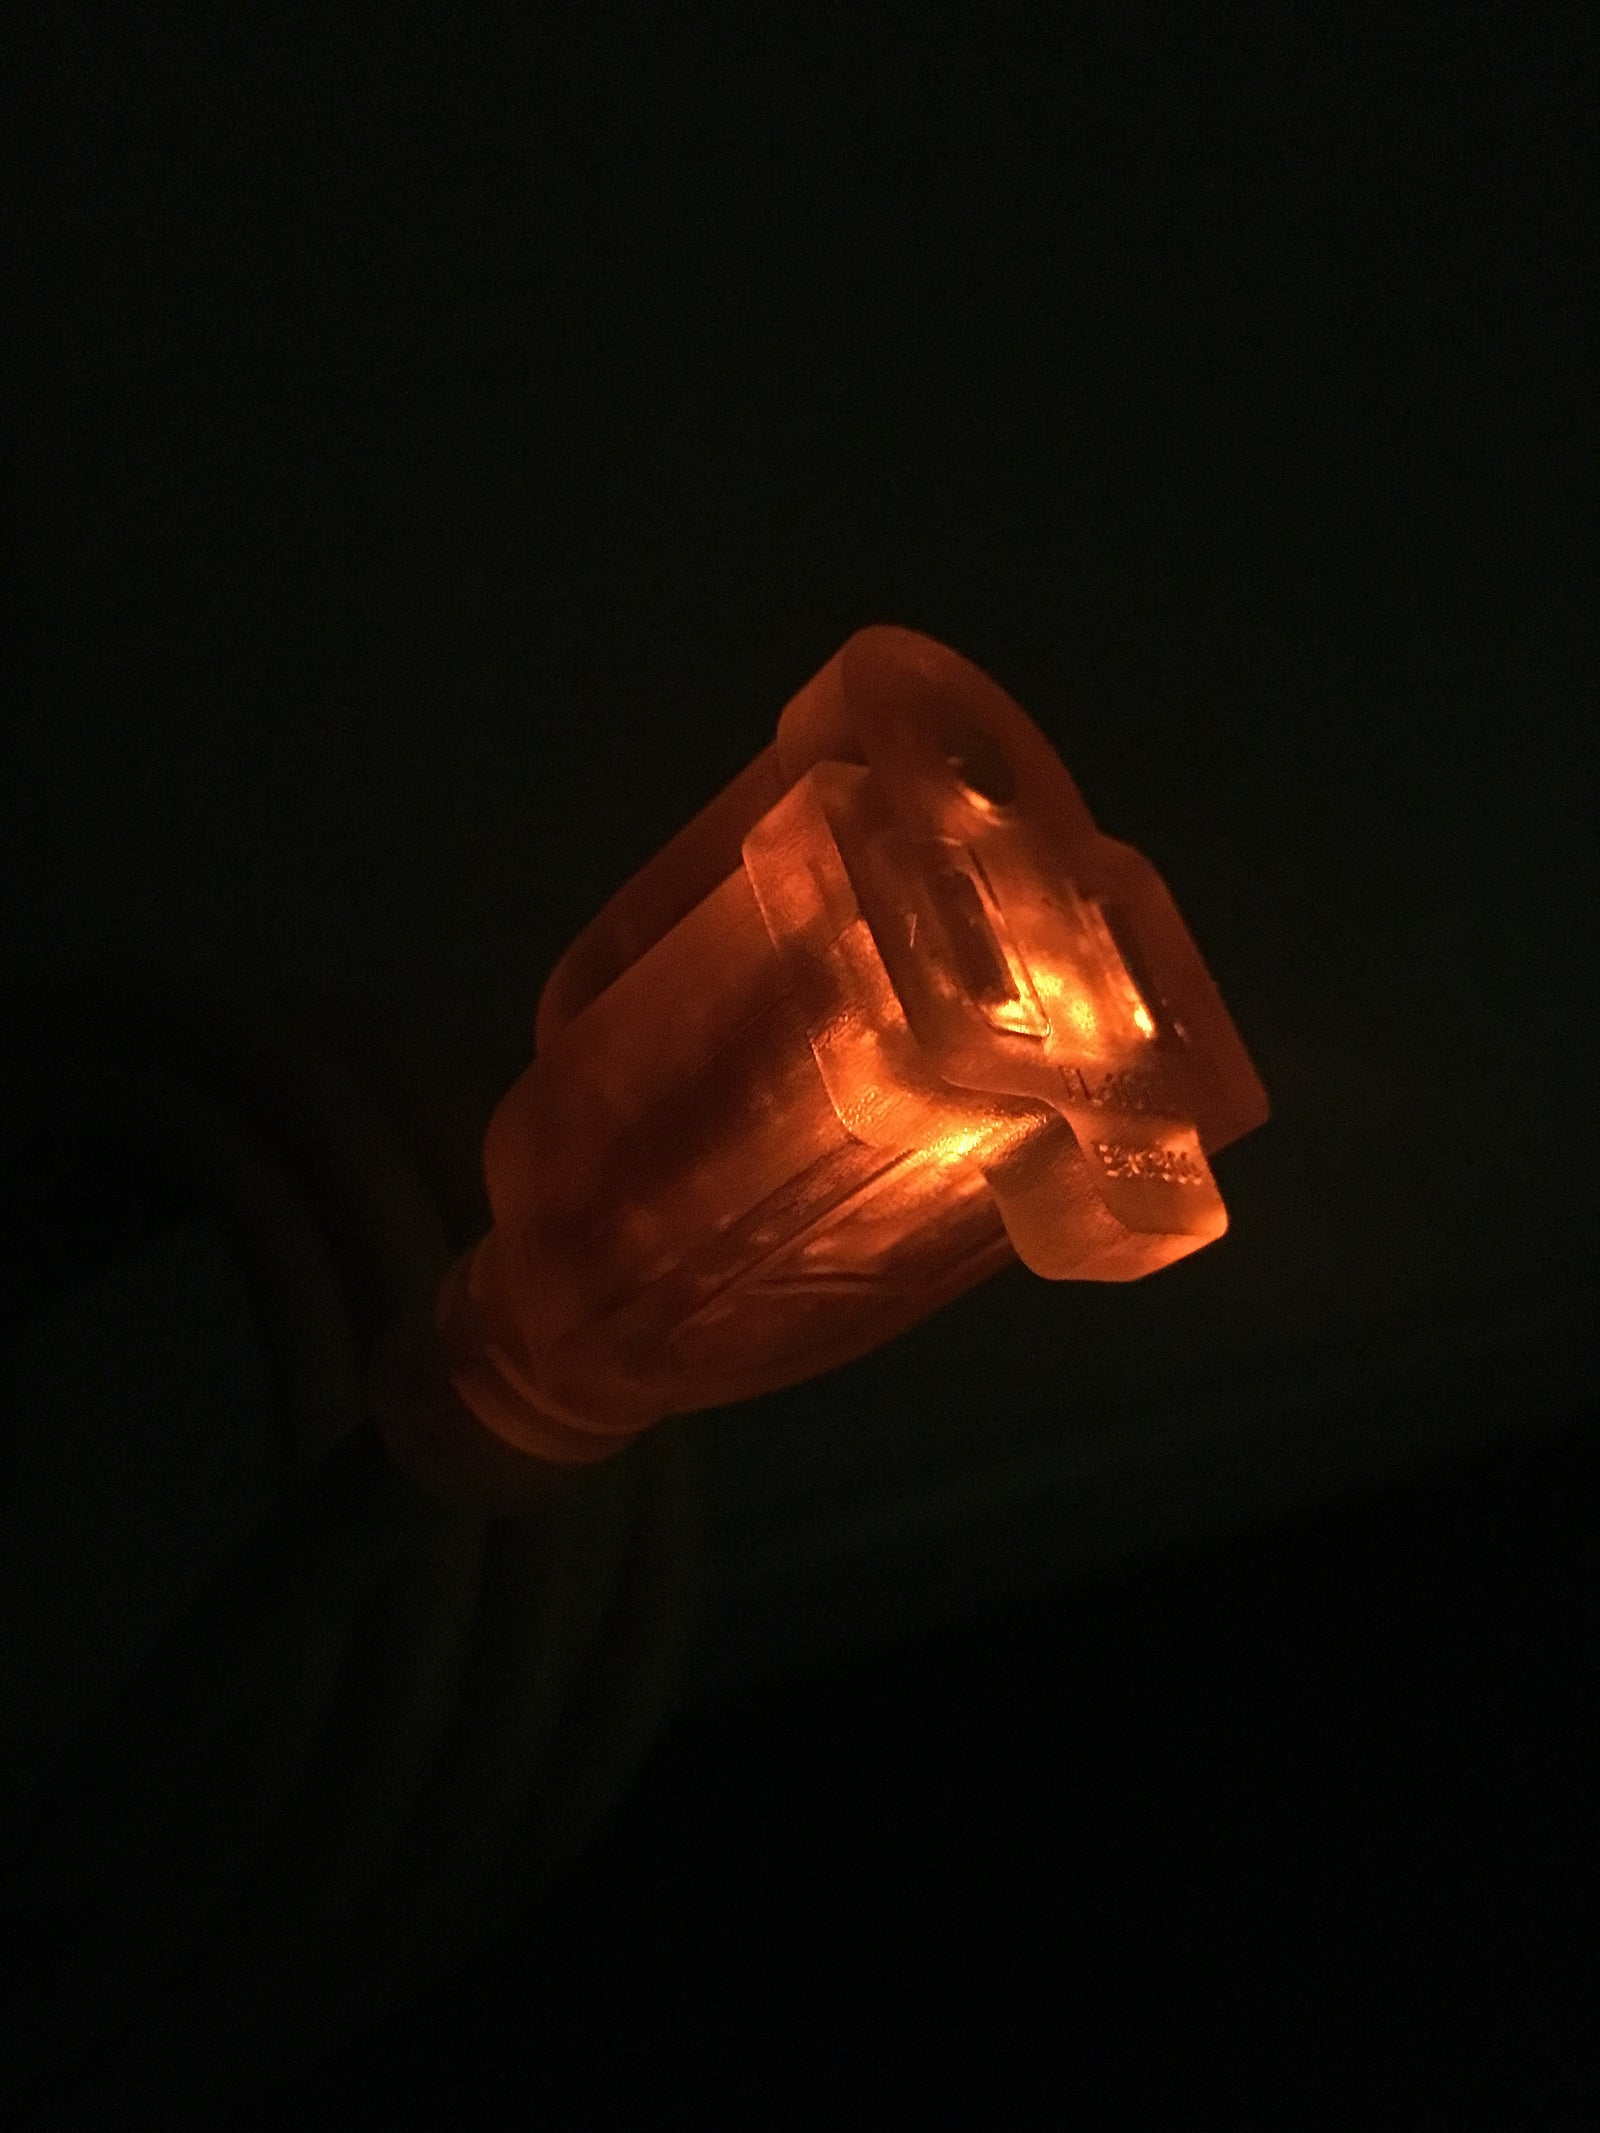 Lighted Plug